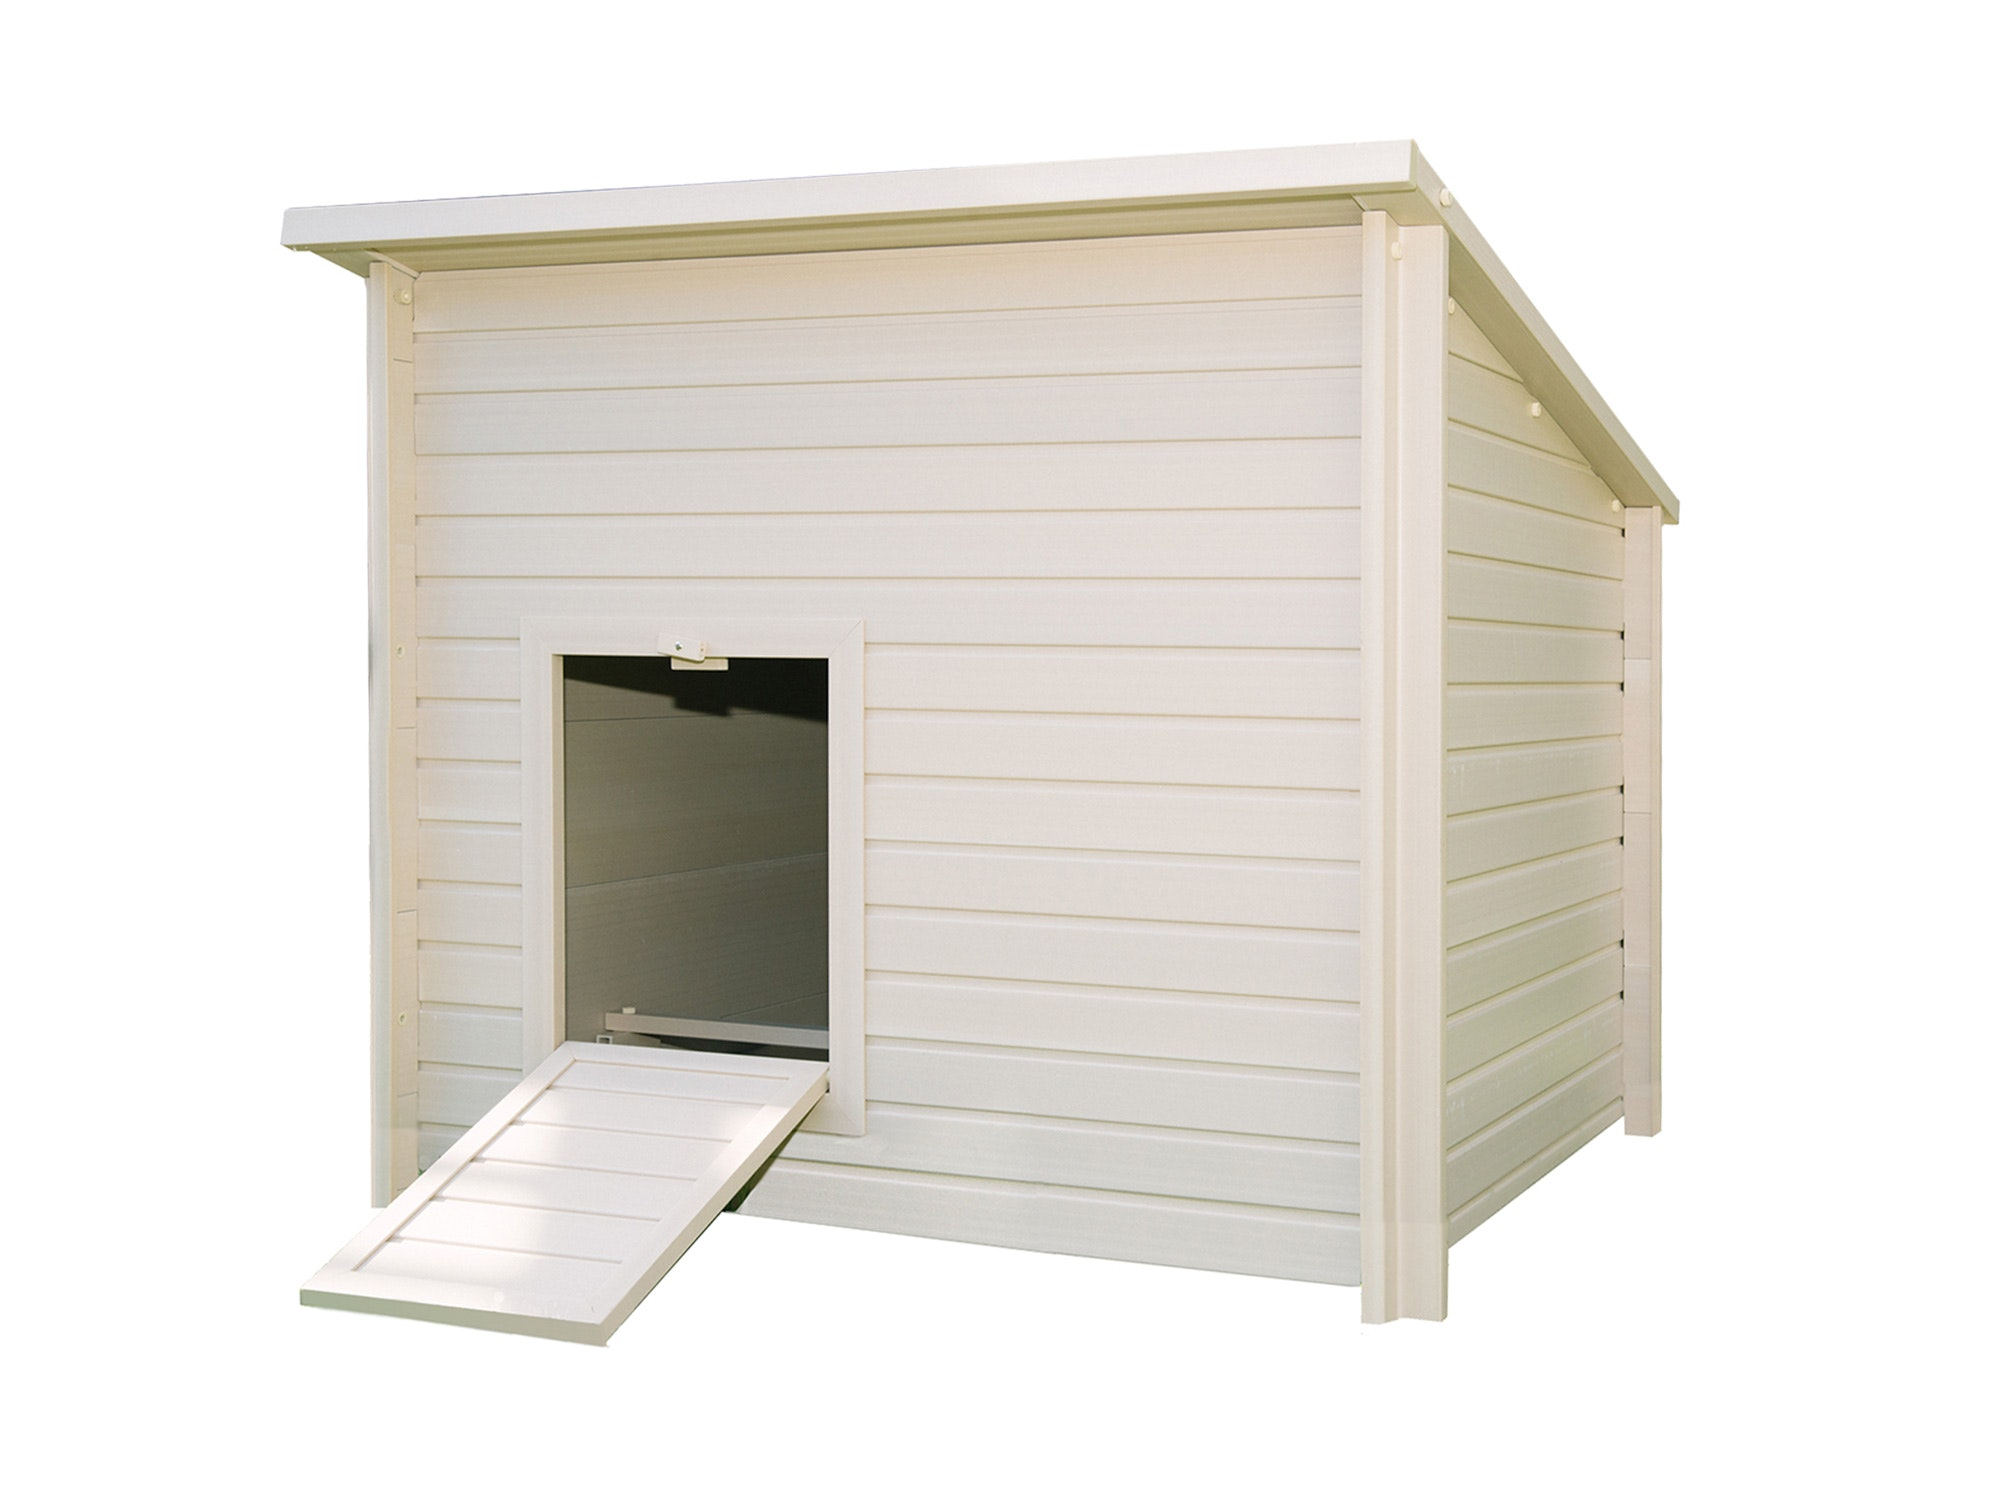 Chicken Coop EcoFlex Large